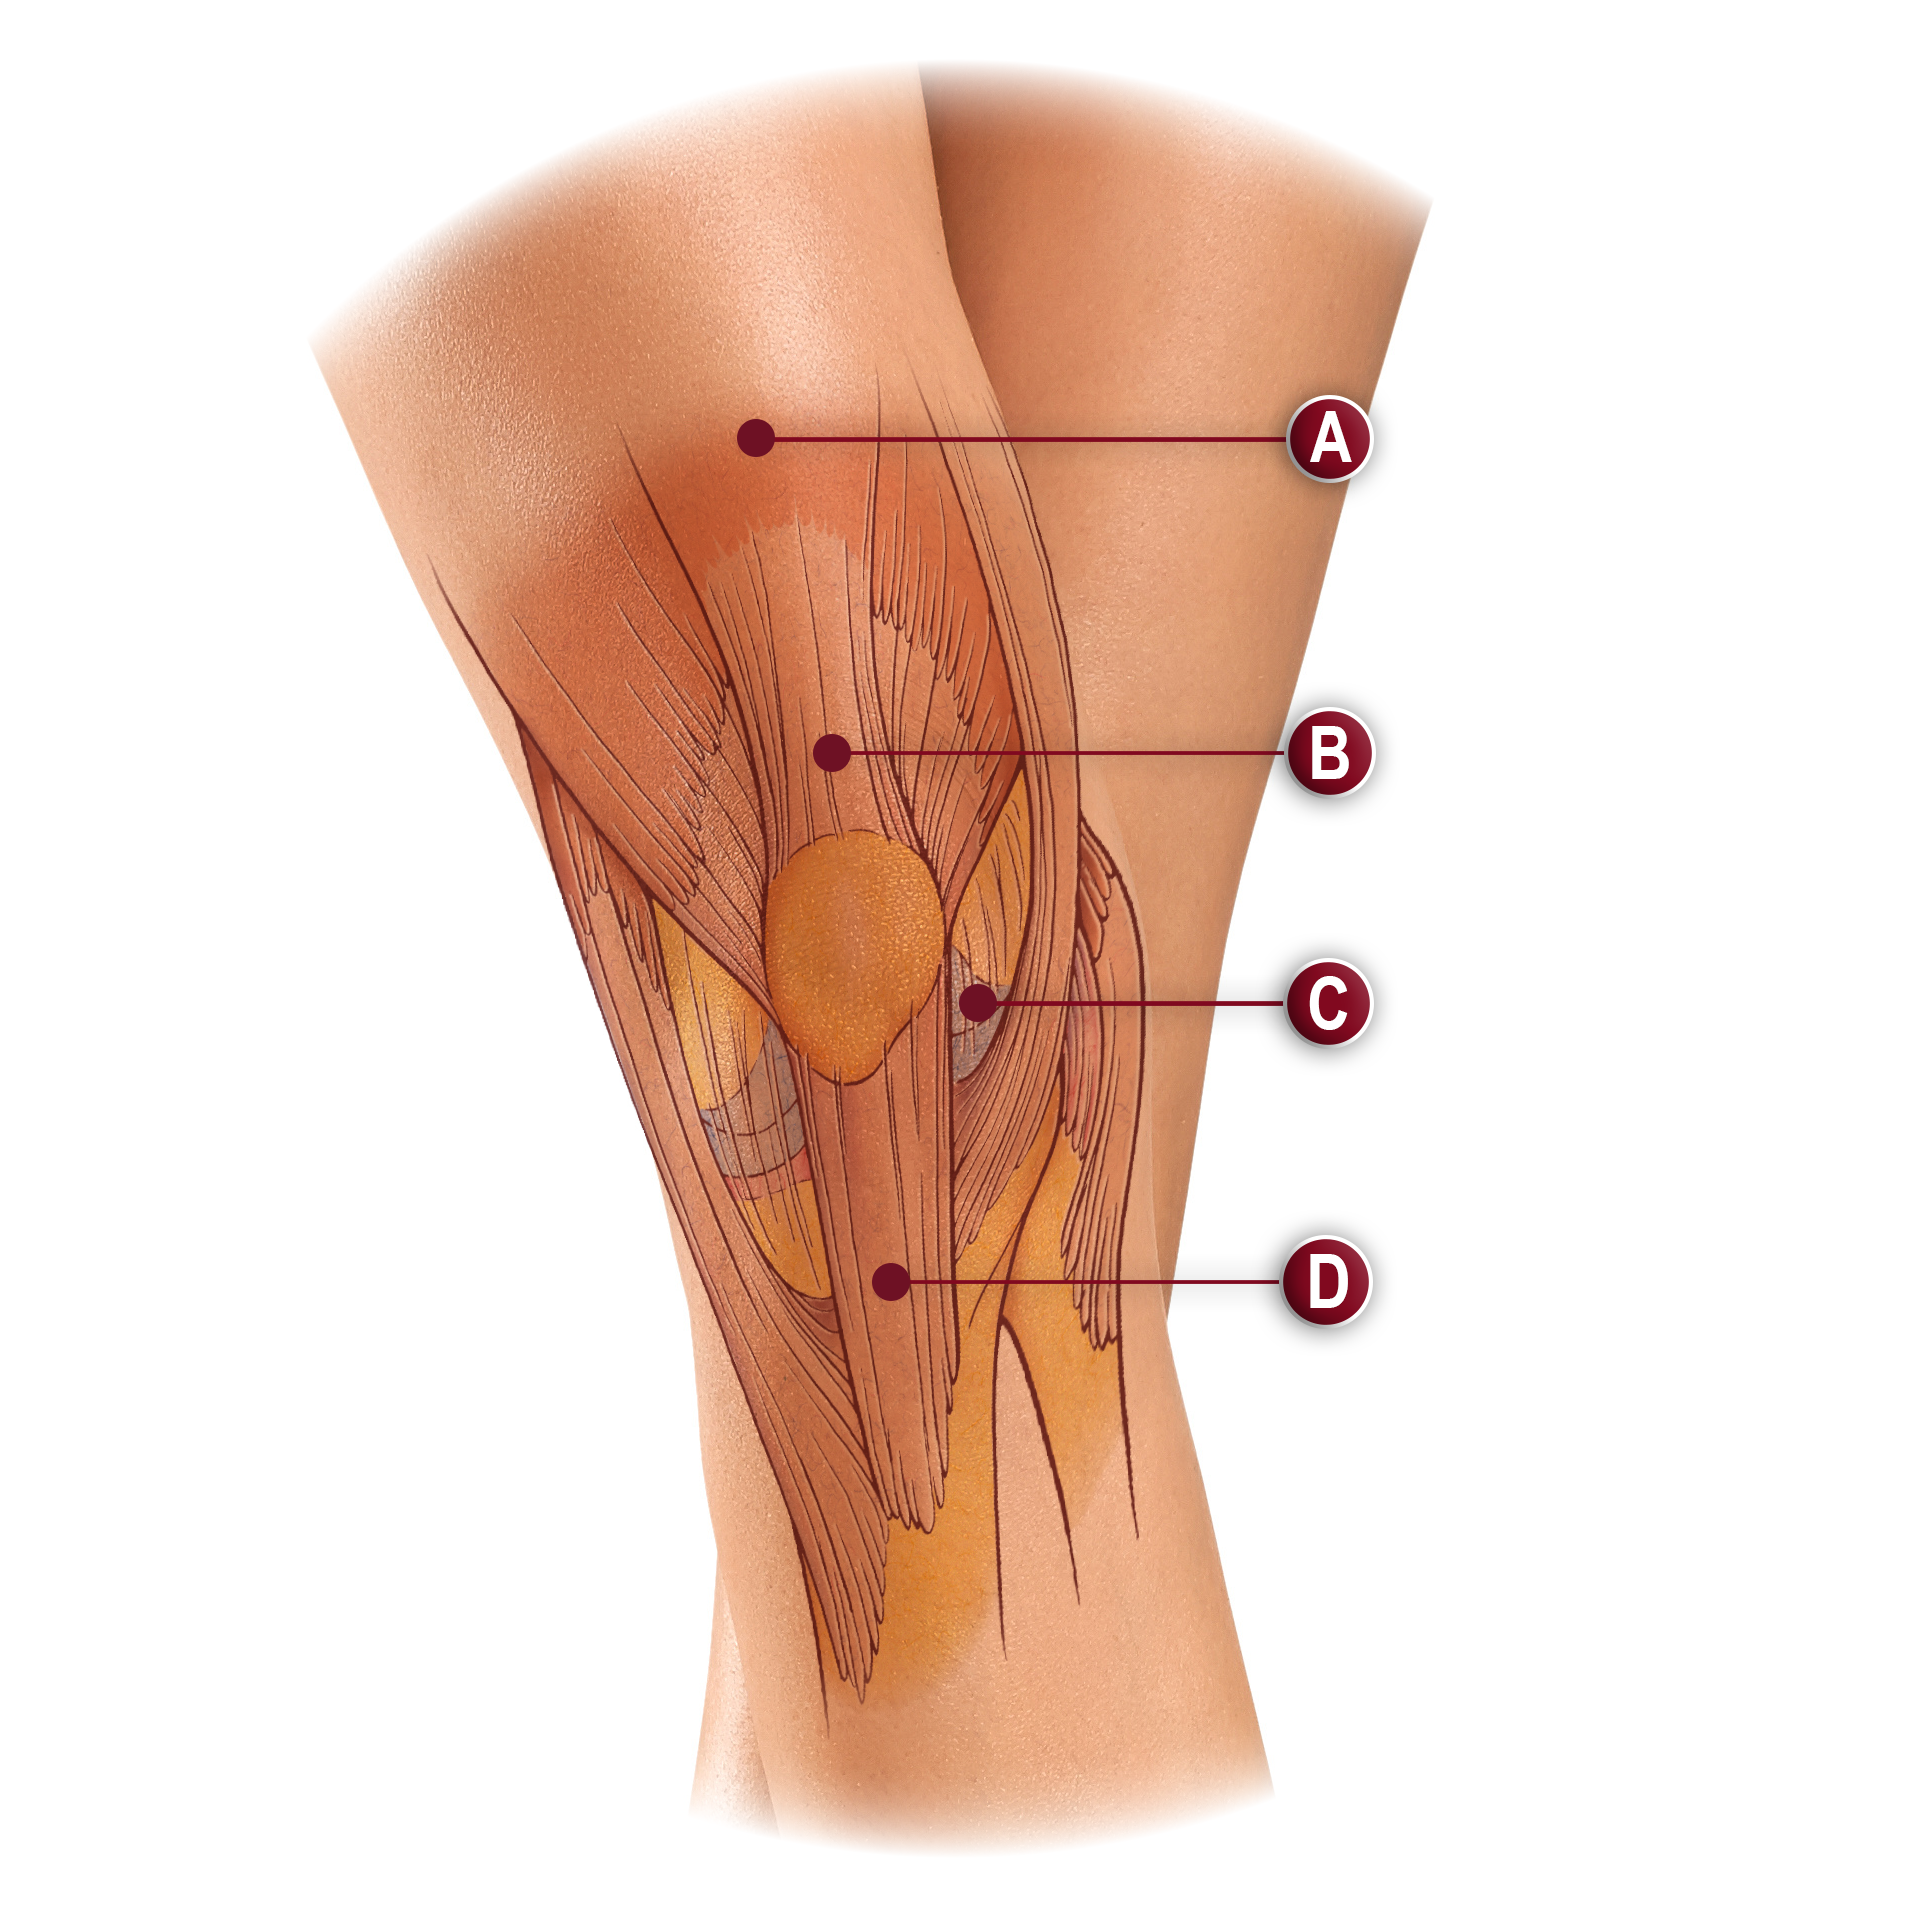 SOFT TISSUES OF THE KNEE ANATOMY ILLUSTRATION